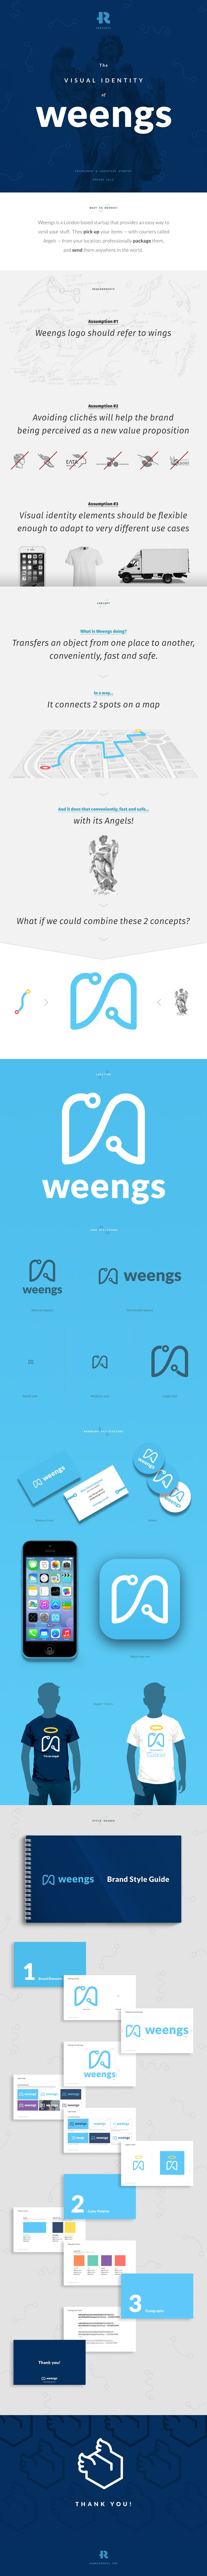 The Visual Identity of Weengs